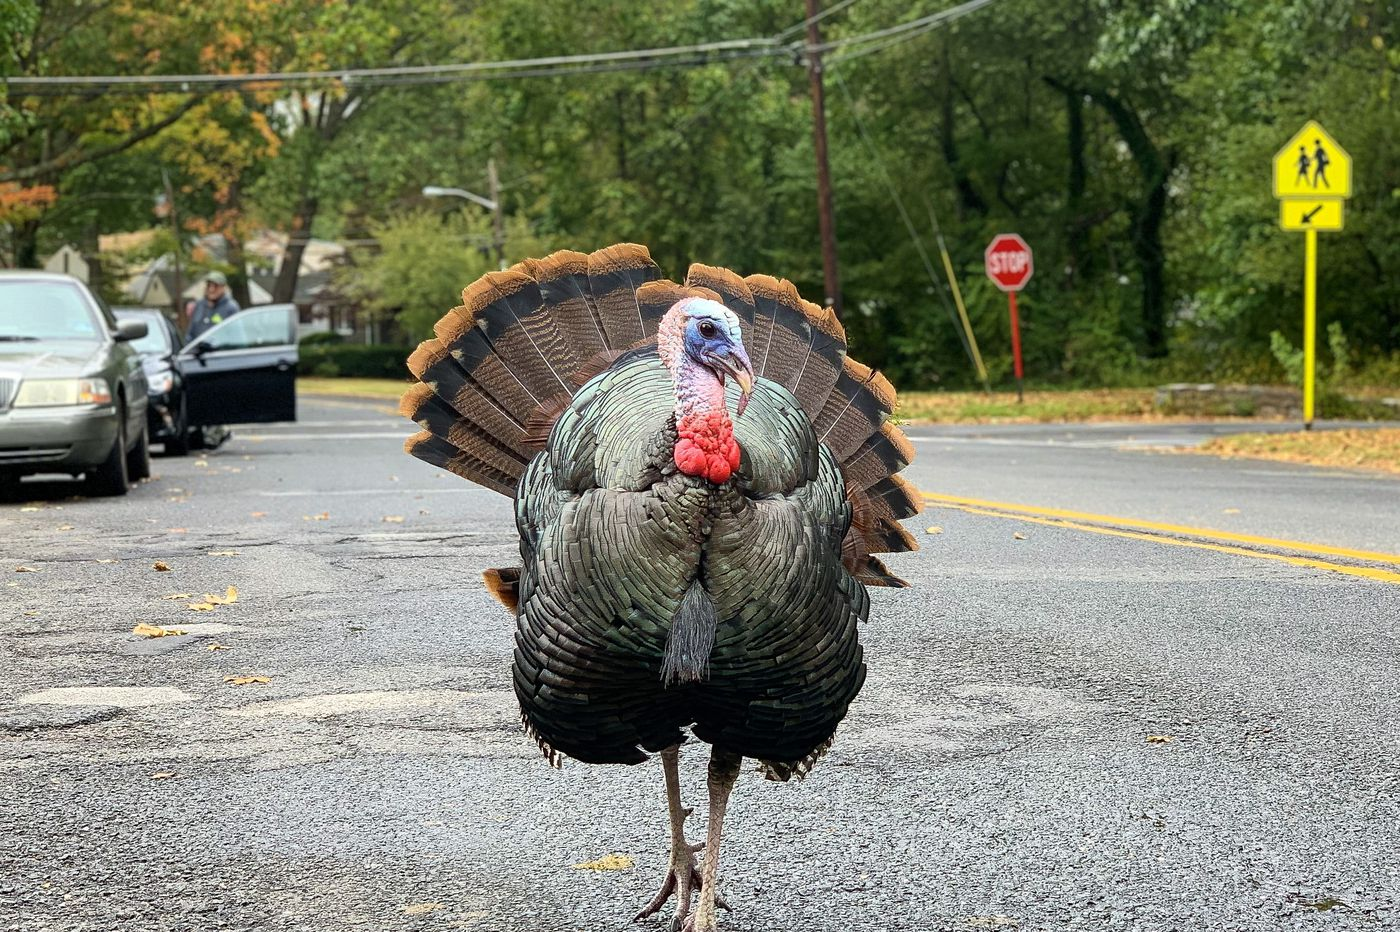 Glenny, the South Jersey celebrity turkey who united and then divided residents, has been euthanized